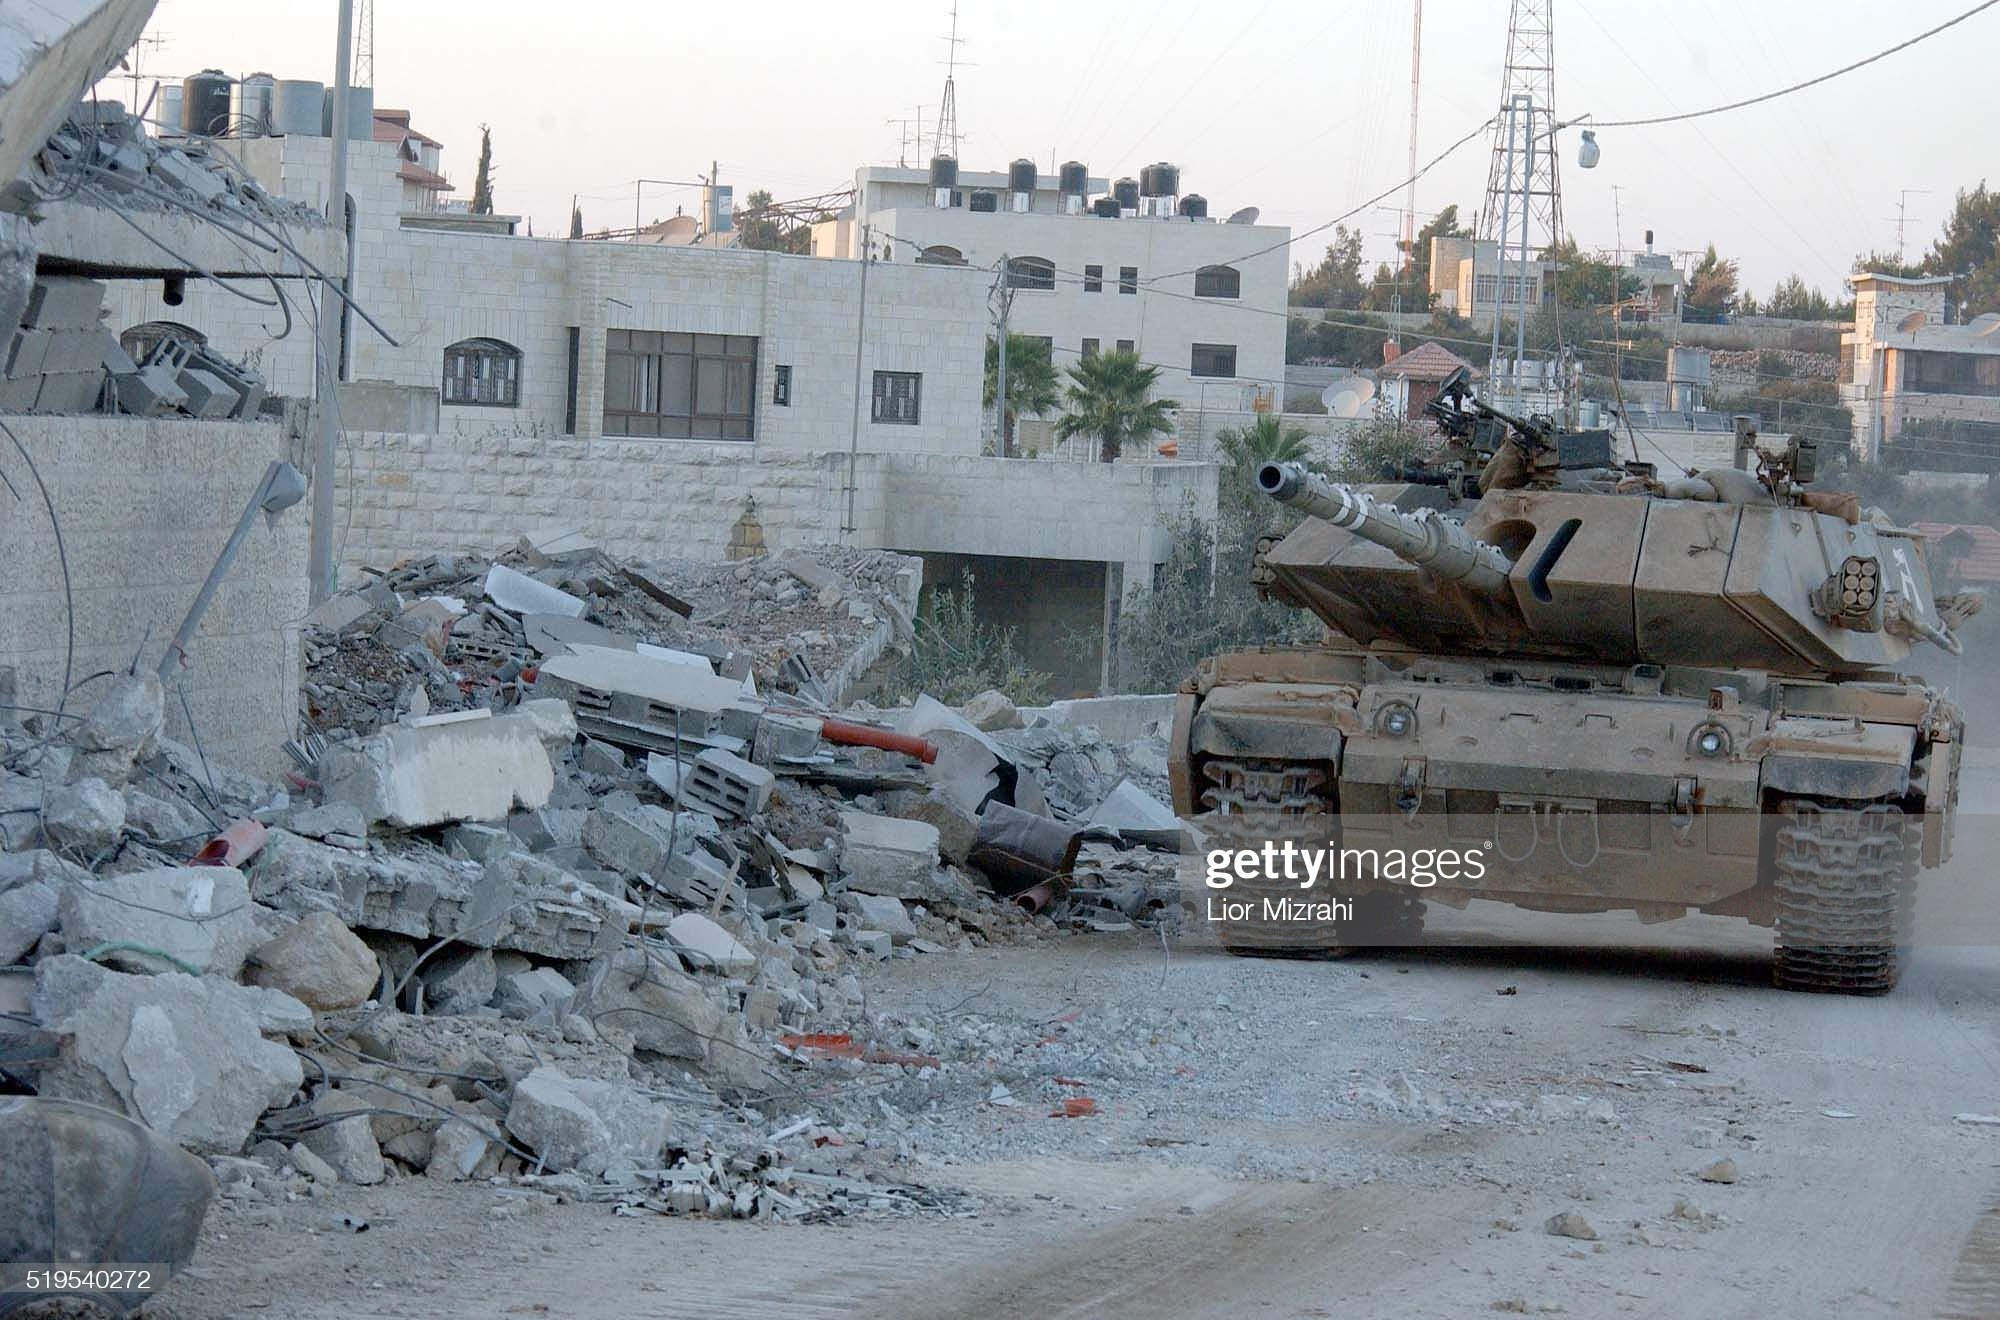 https://media.gettyimages.com/photos/an-israeli-tank-takes-up-position-next-to-the-damaged-compound-of-picture-id519540272?s=2048x2048